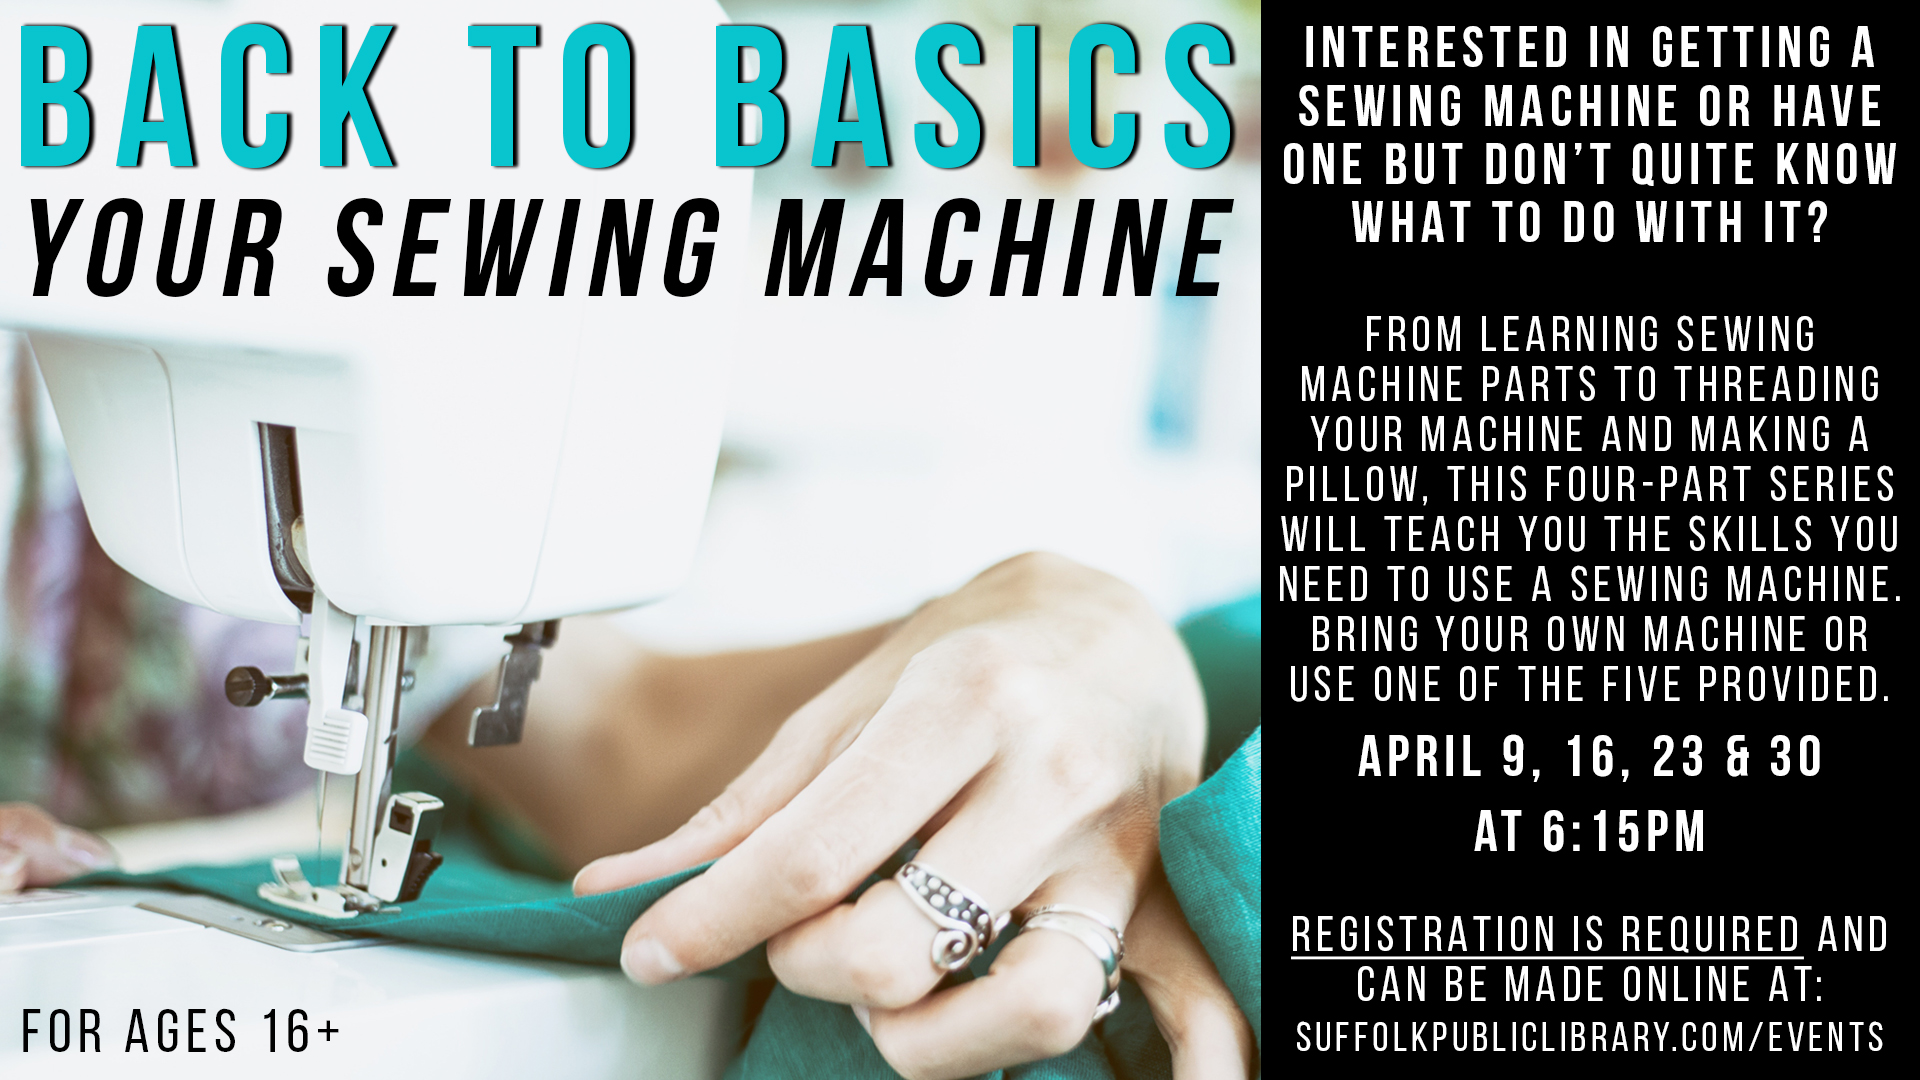 Back to Basics--Your Sewing Machine